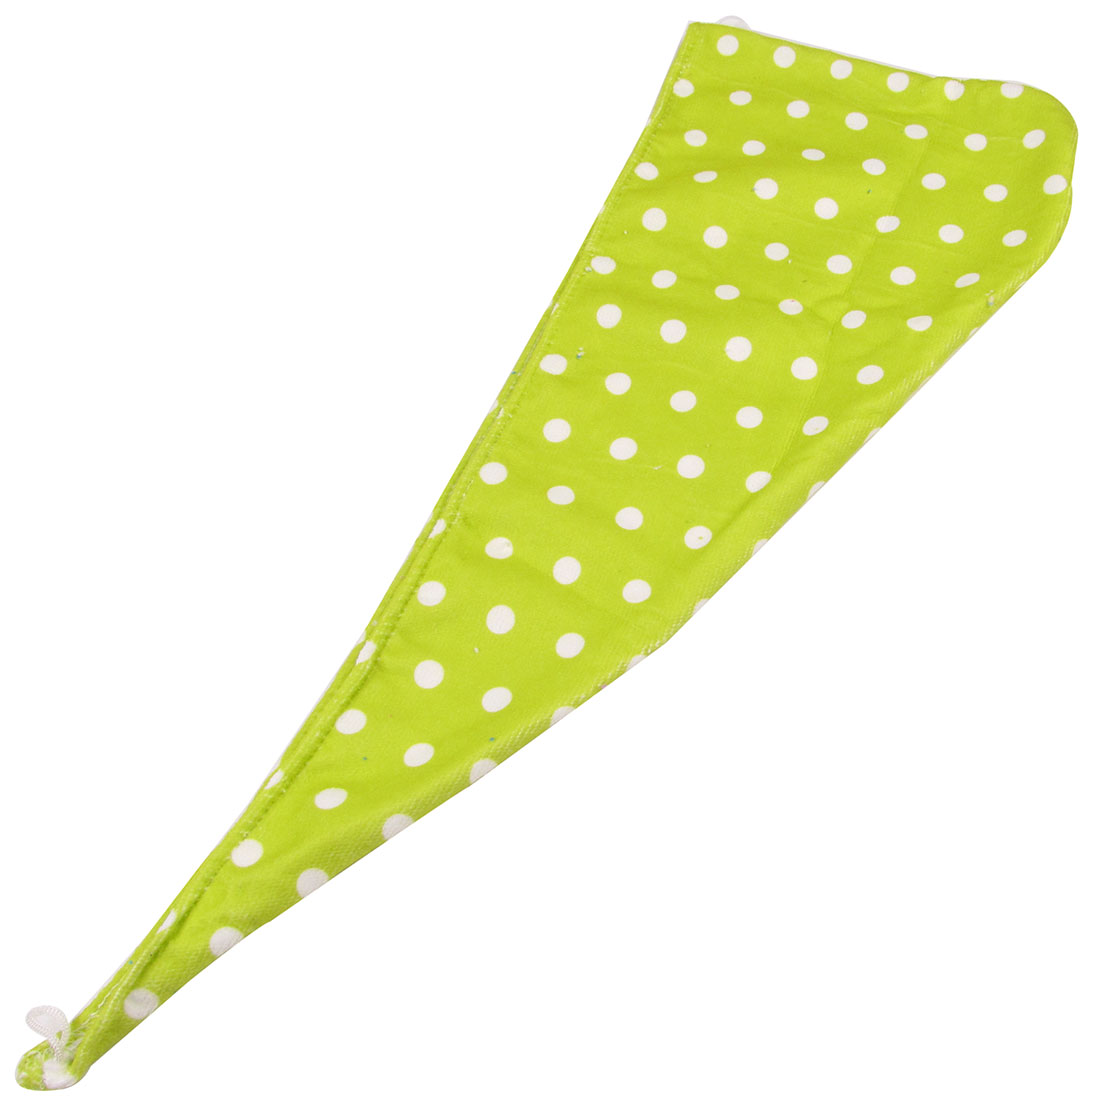 Dots Print Yellow Green Soft Microfiber Hair Drying Hat Show Cap for Ladies